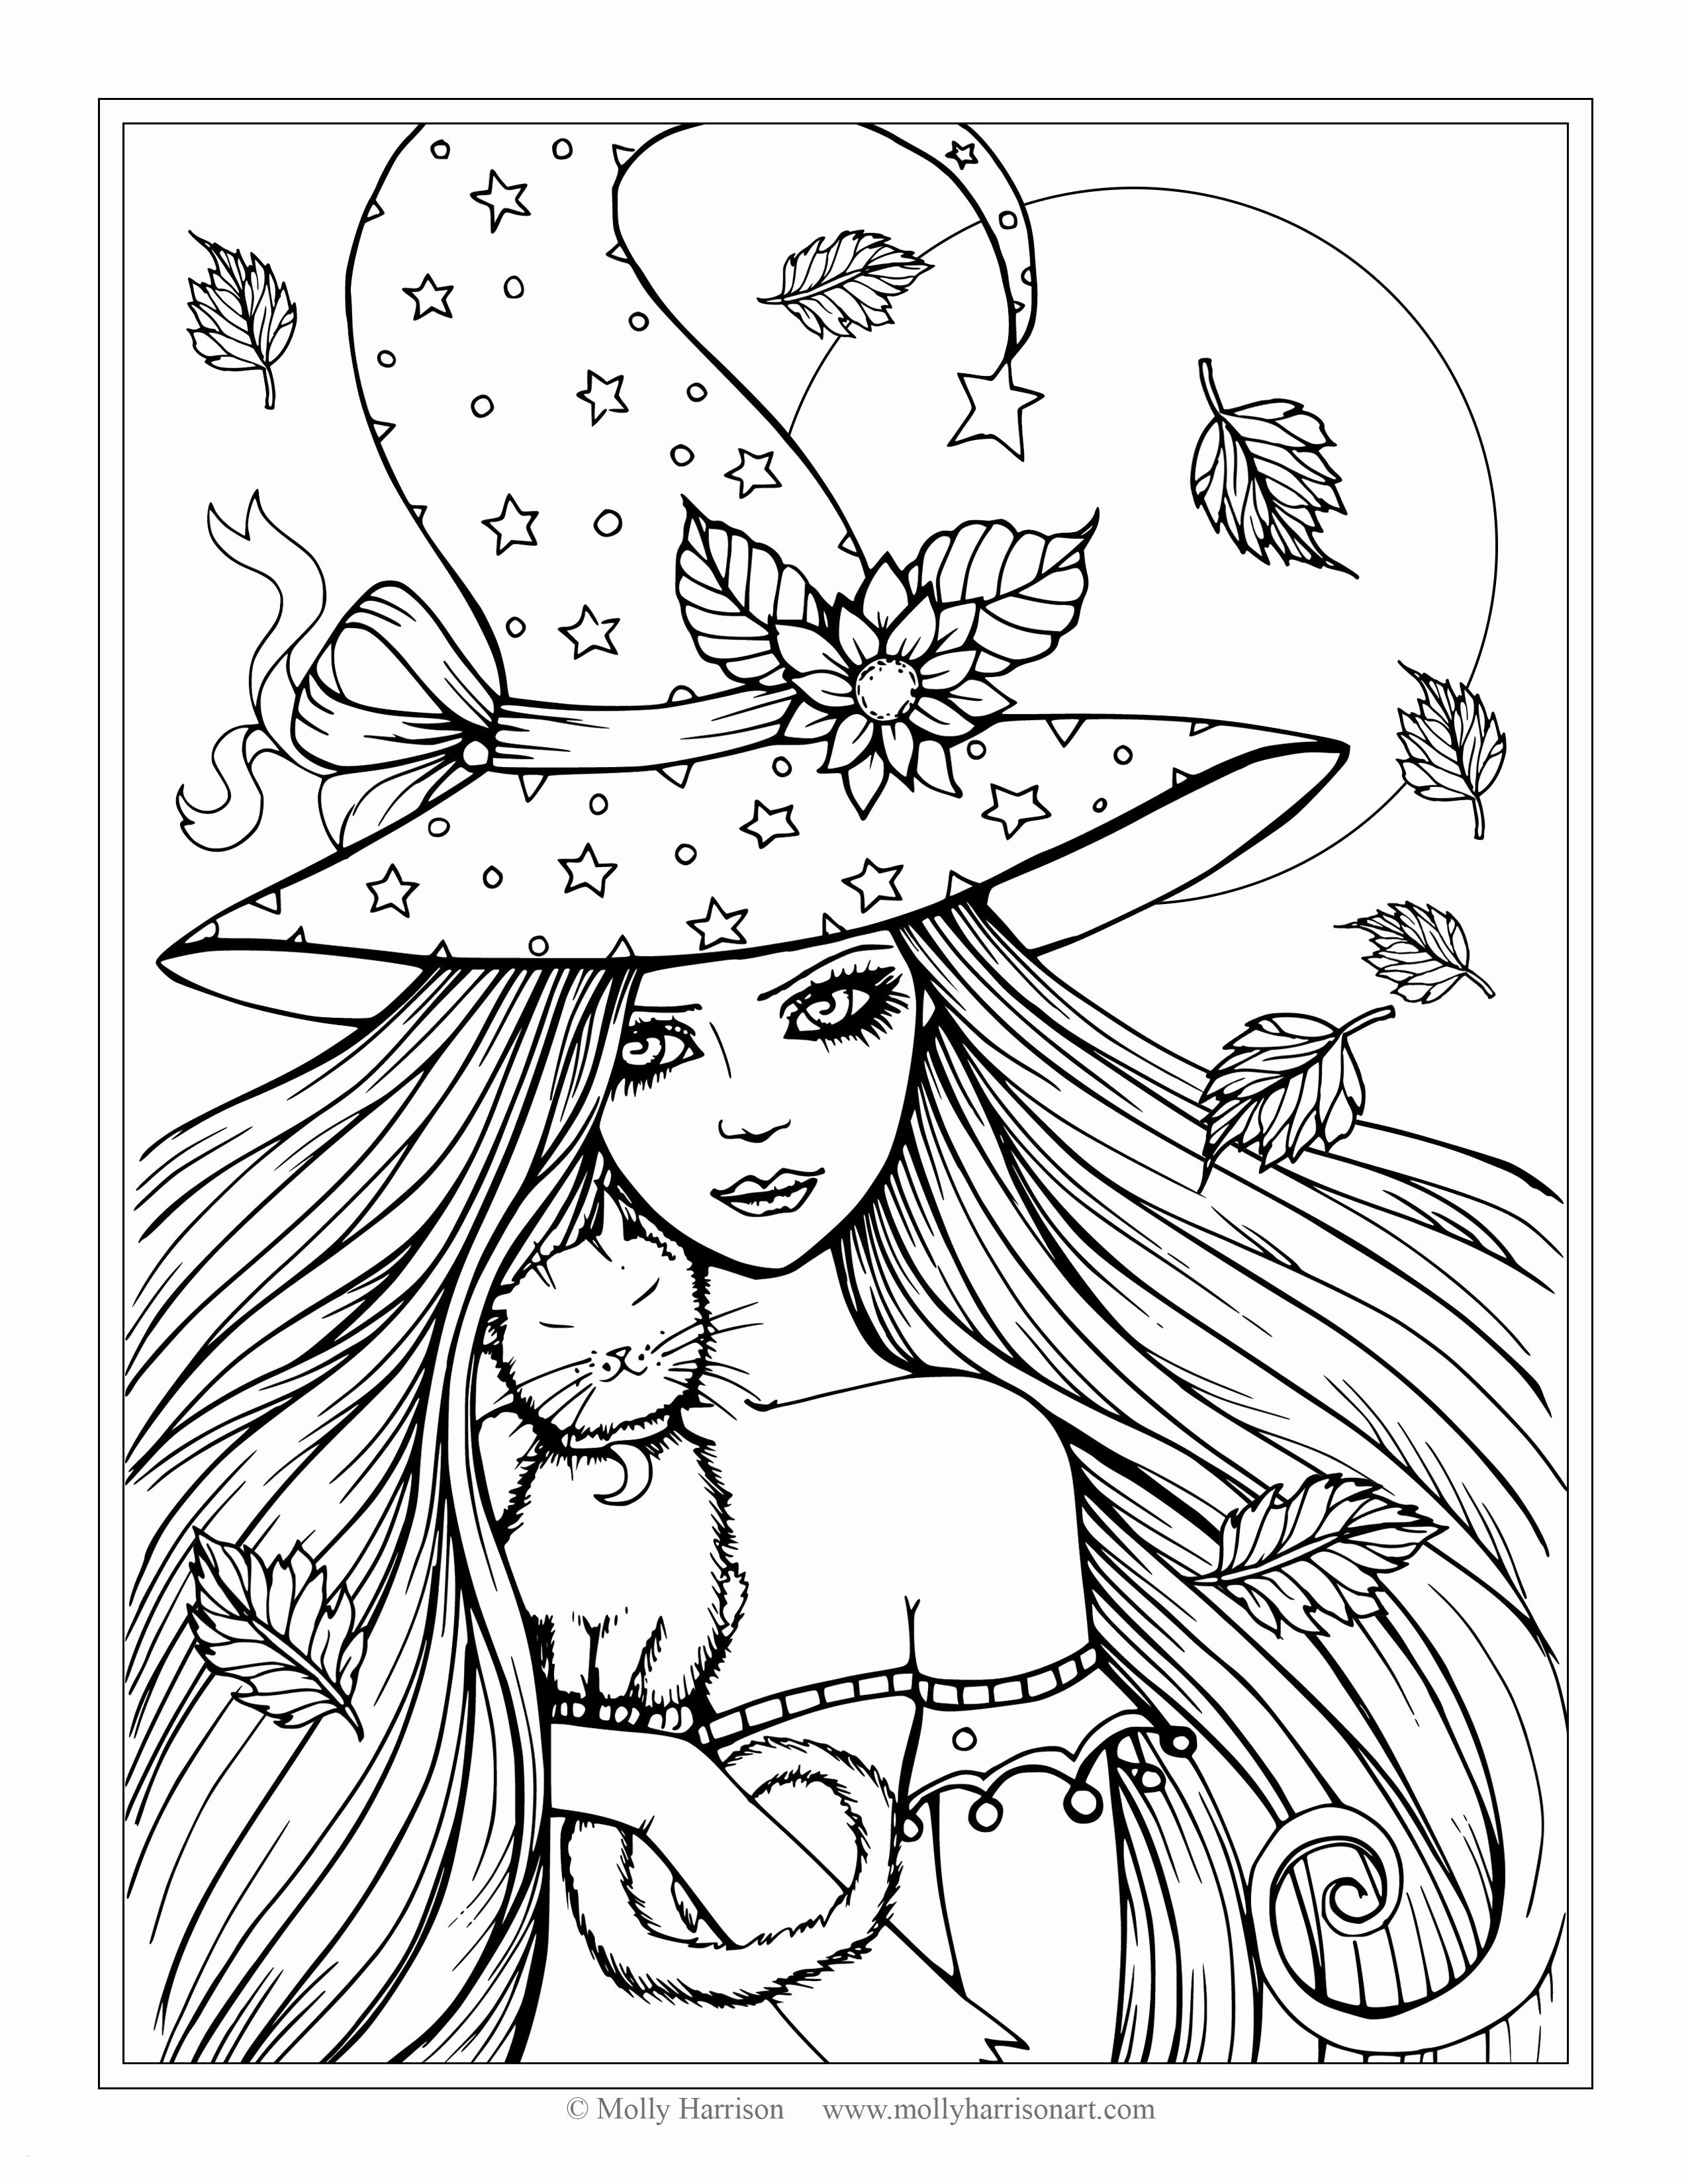 free printable coloring pages for toddlers Download-Free Printable Coloring Pages for toddlers Free Printable Coloring Pages for Kids Stylish Best Printable Cds 0d 16-o